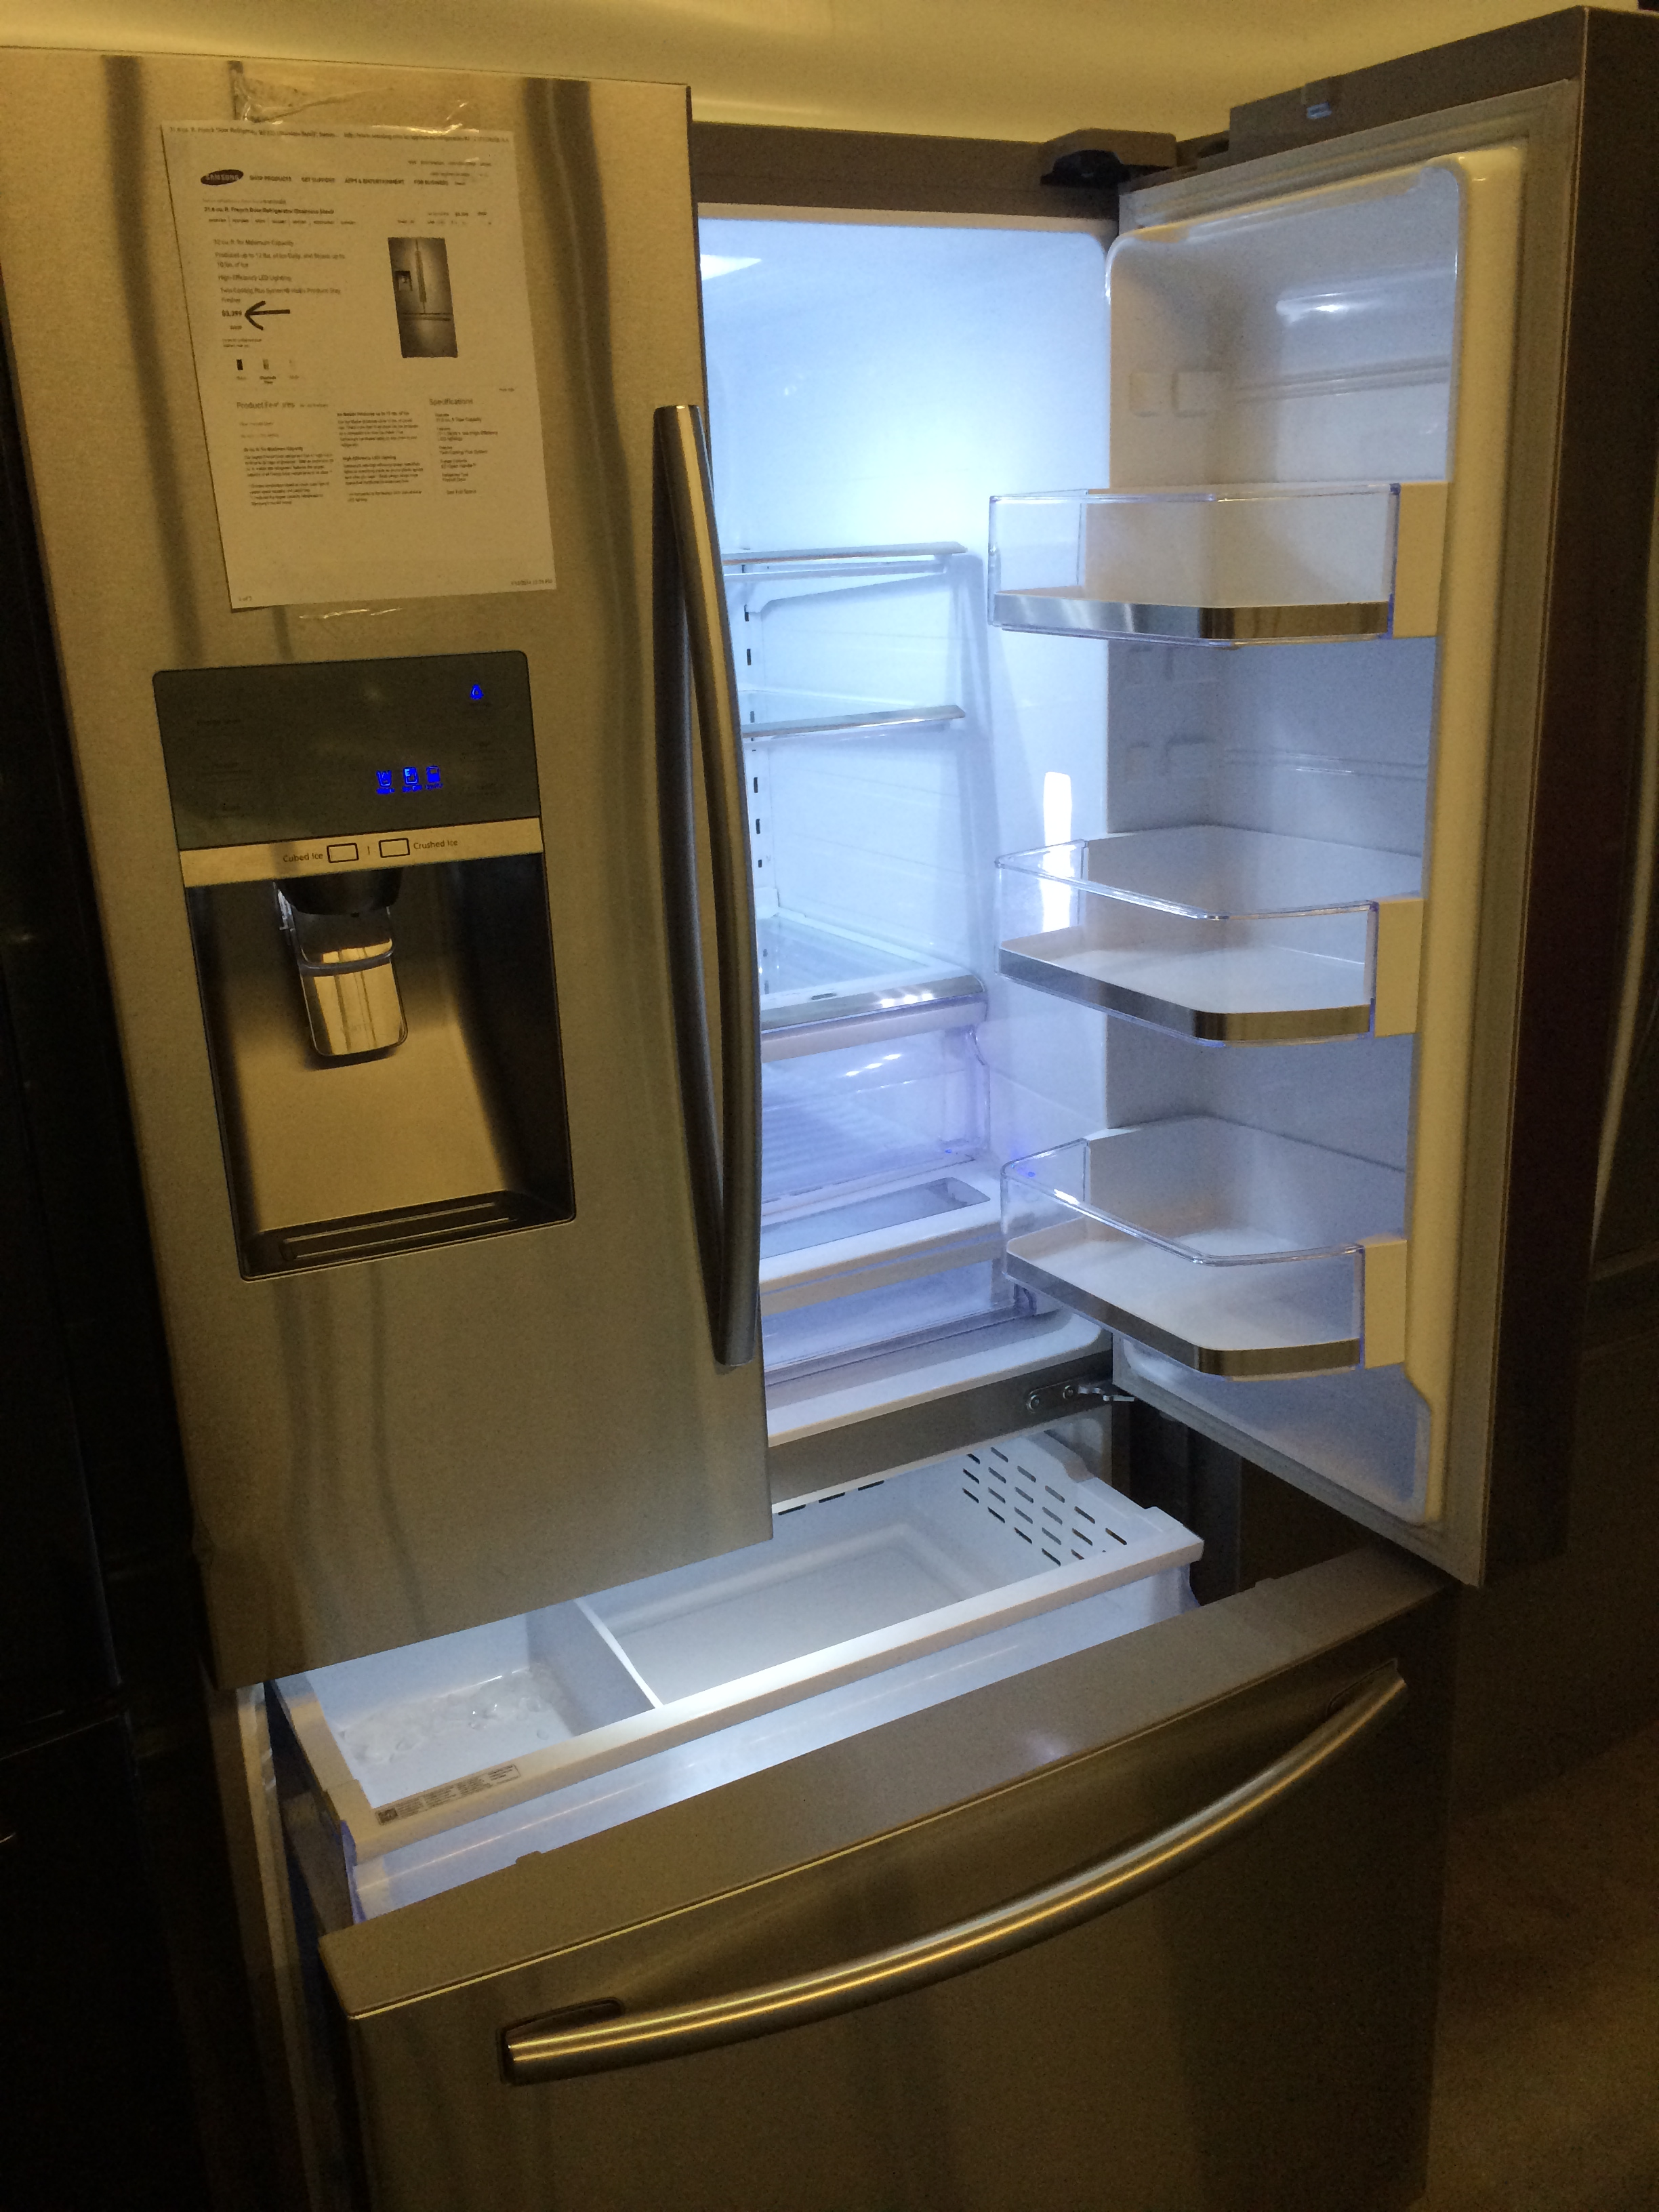 stainless door pl com ice fingerprint doors steel ft appliances refrigerator at french with whirlpool cu maker lowes shop refrigerators